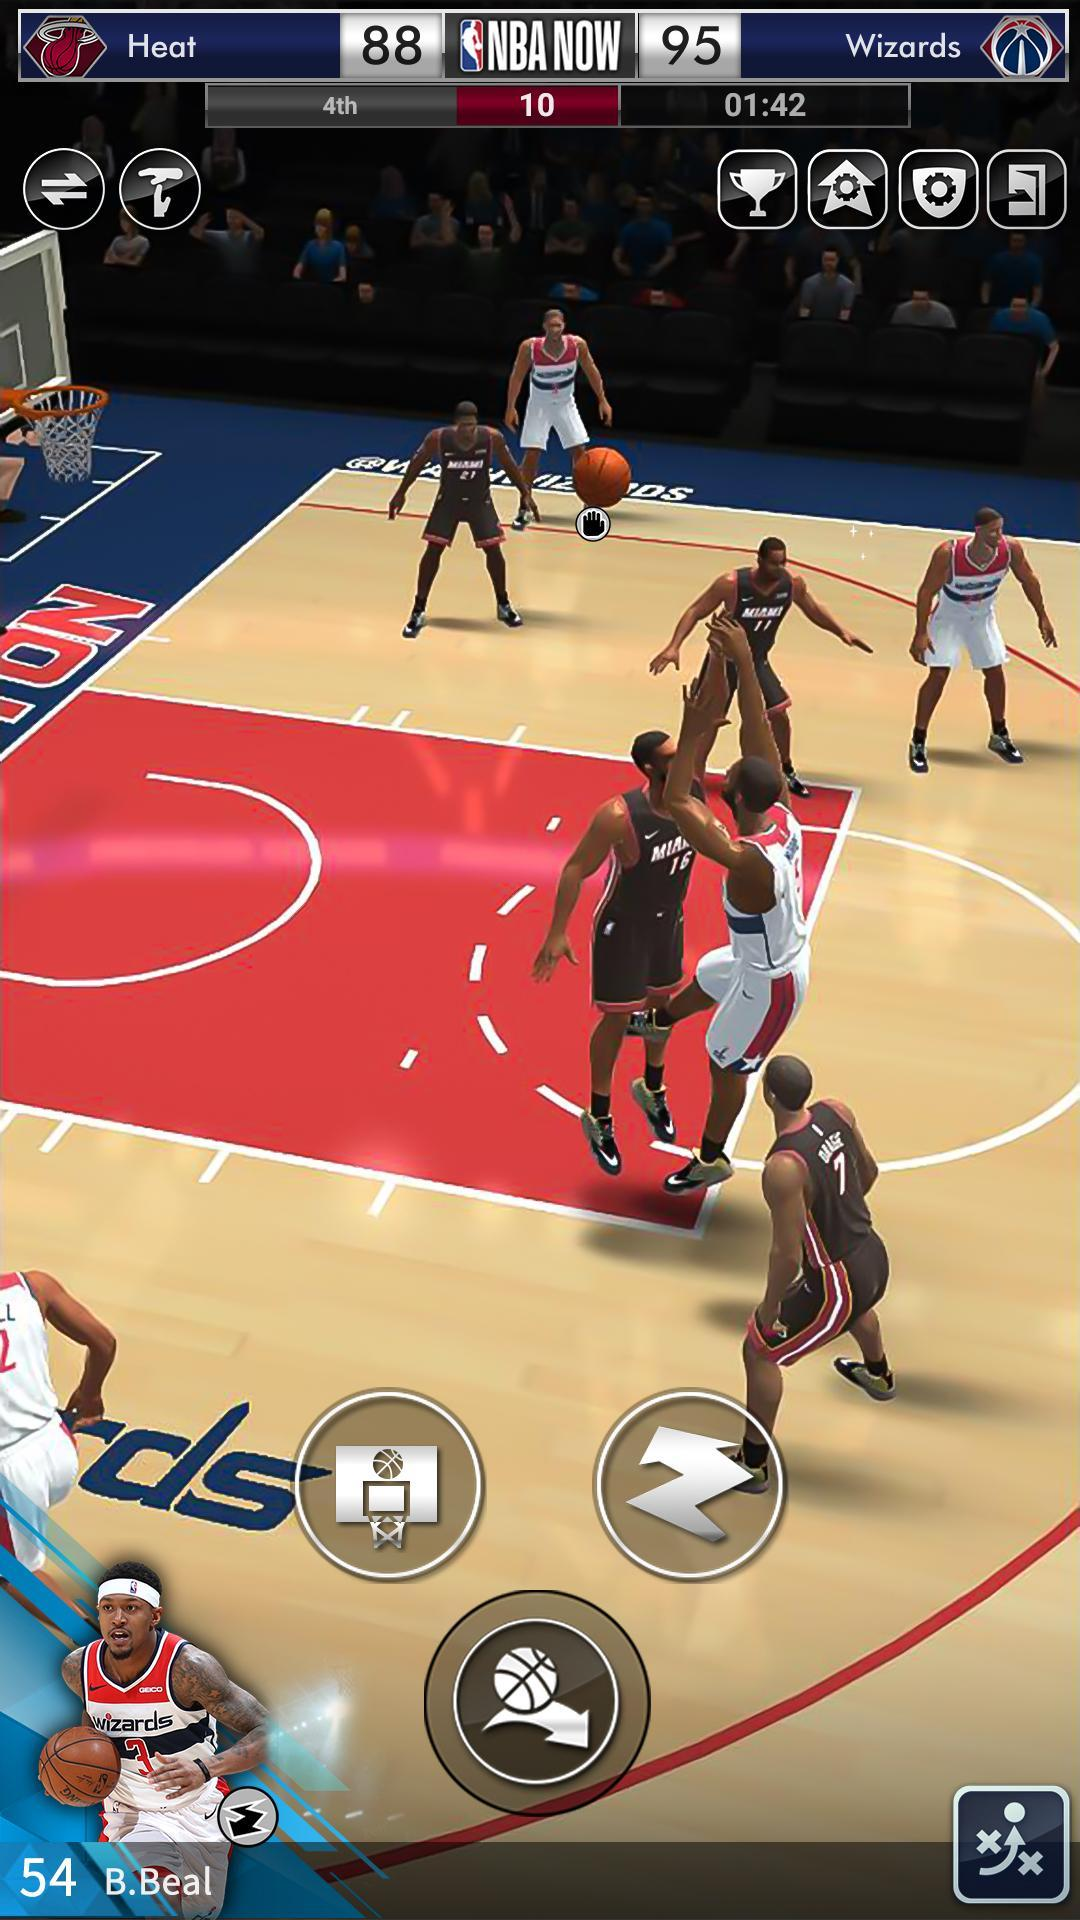 NBA NOW Mobile Basketball Game 1.5.4 Screenshot 6